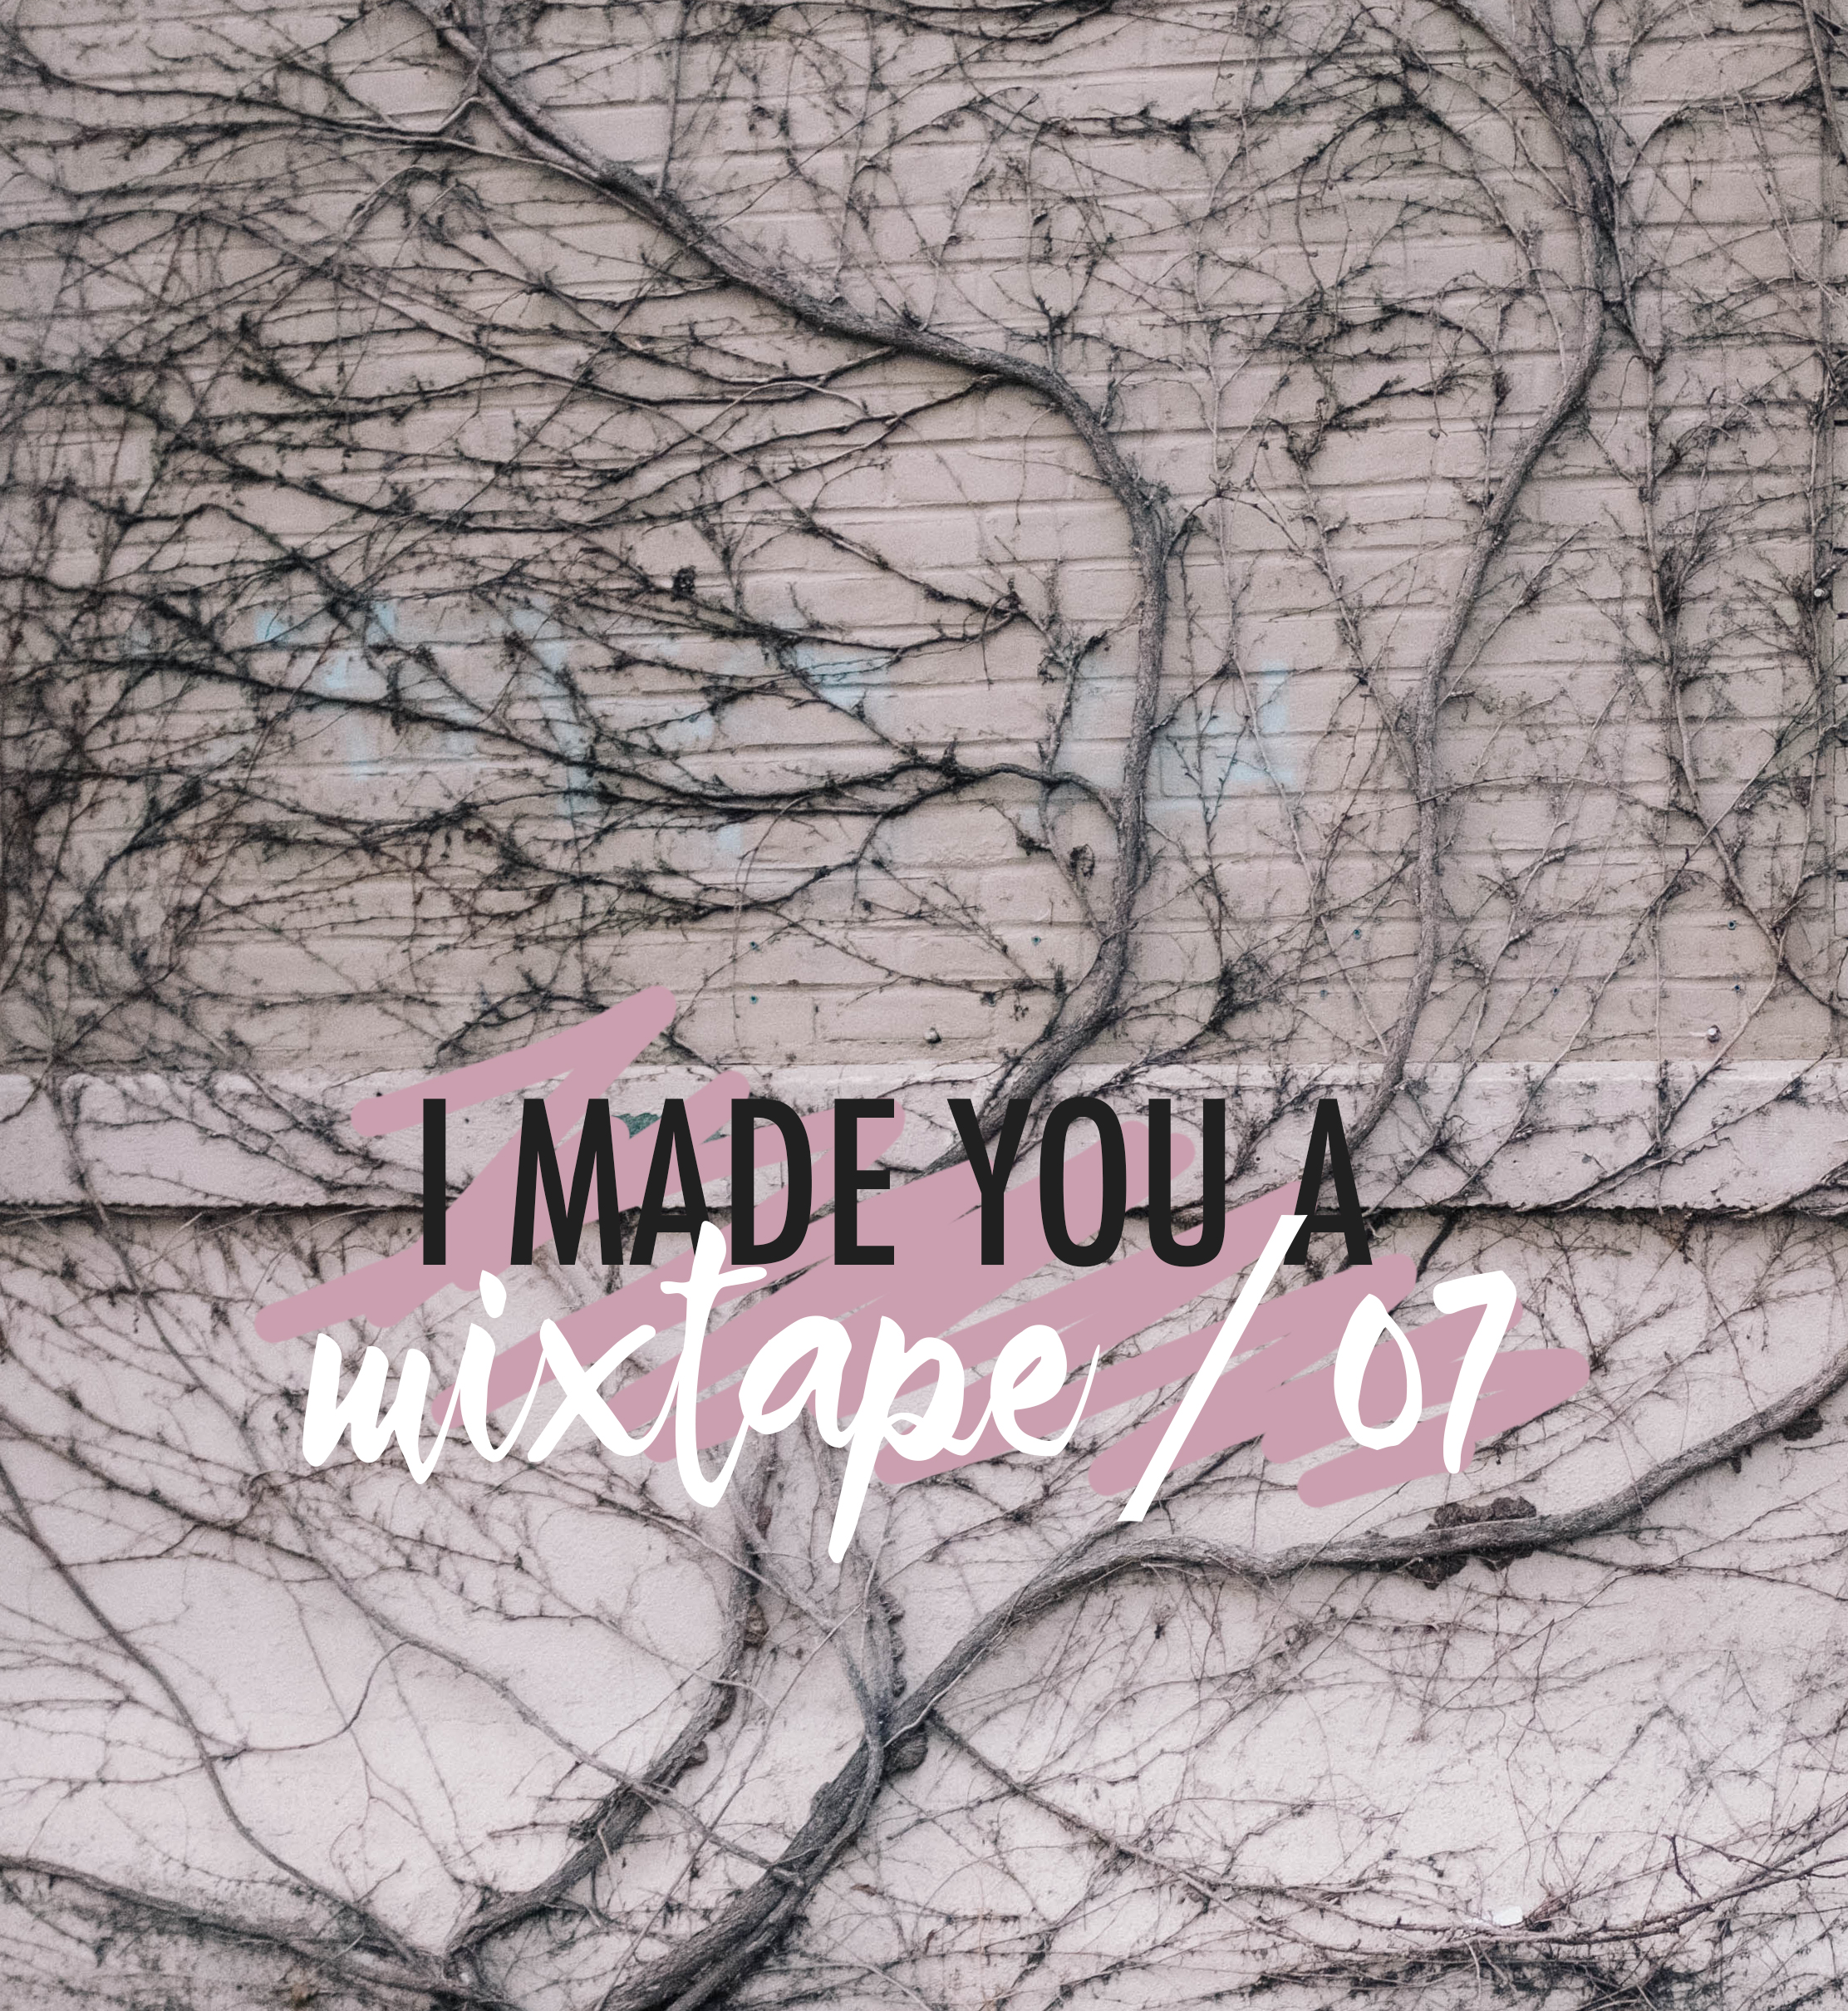 i made you a mixtape / 07 #playlist